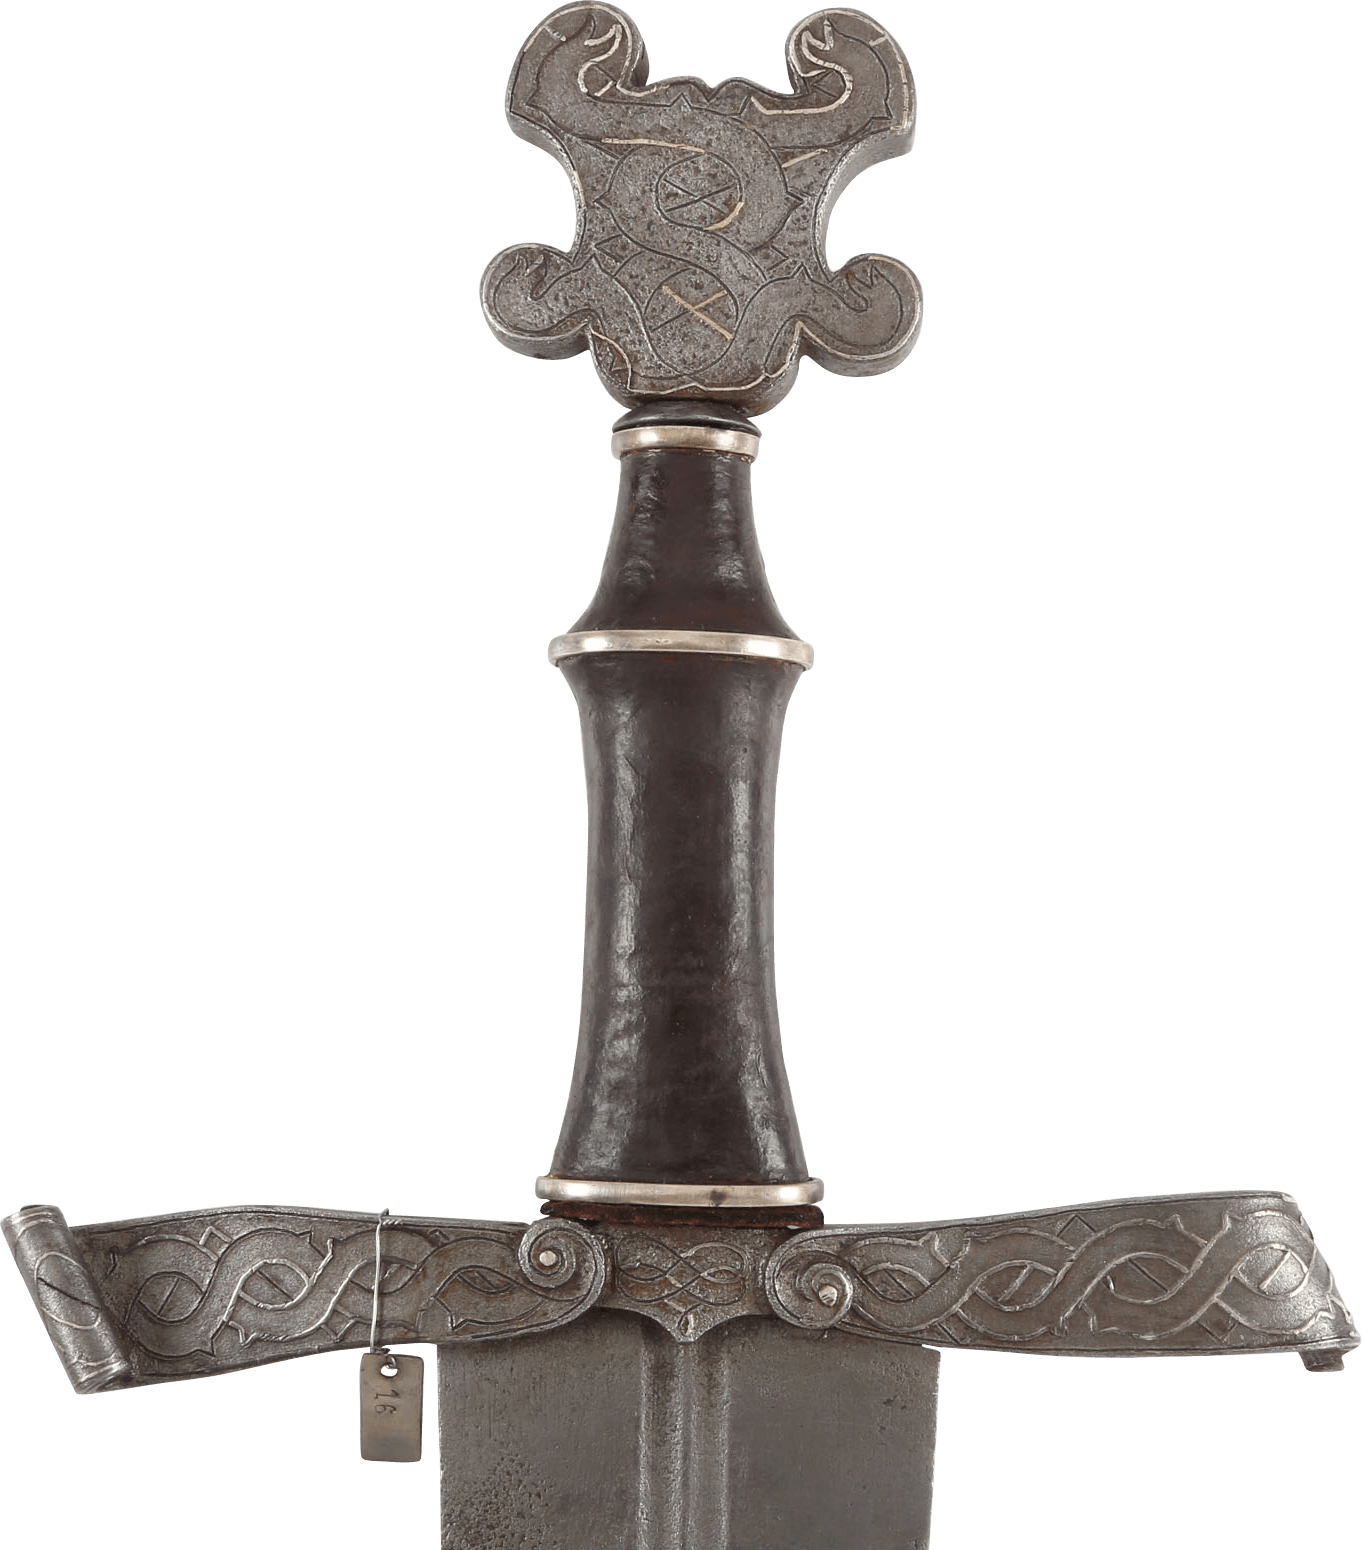 Late Gothic Italian Broadsword C.1500-10 - Product